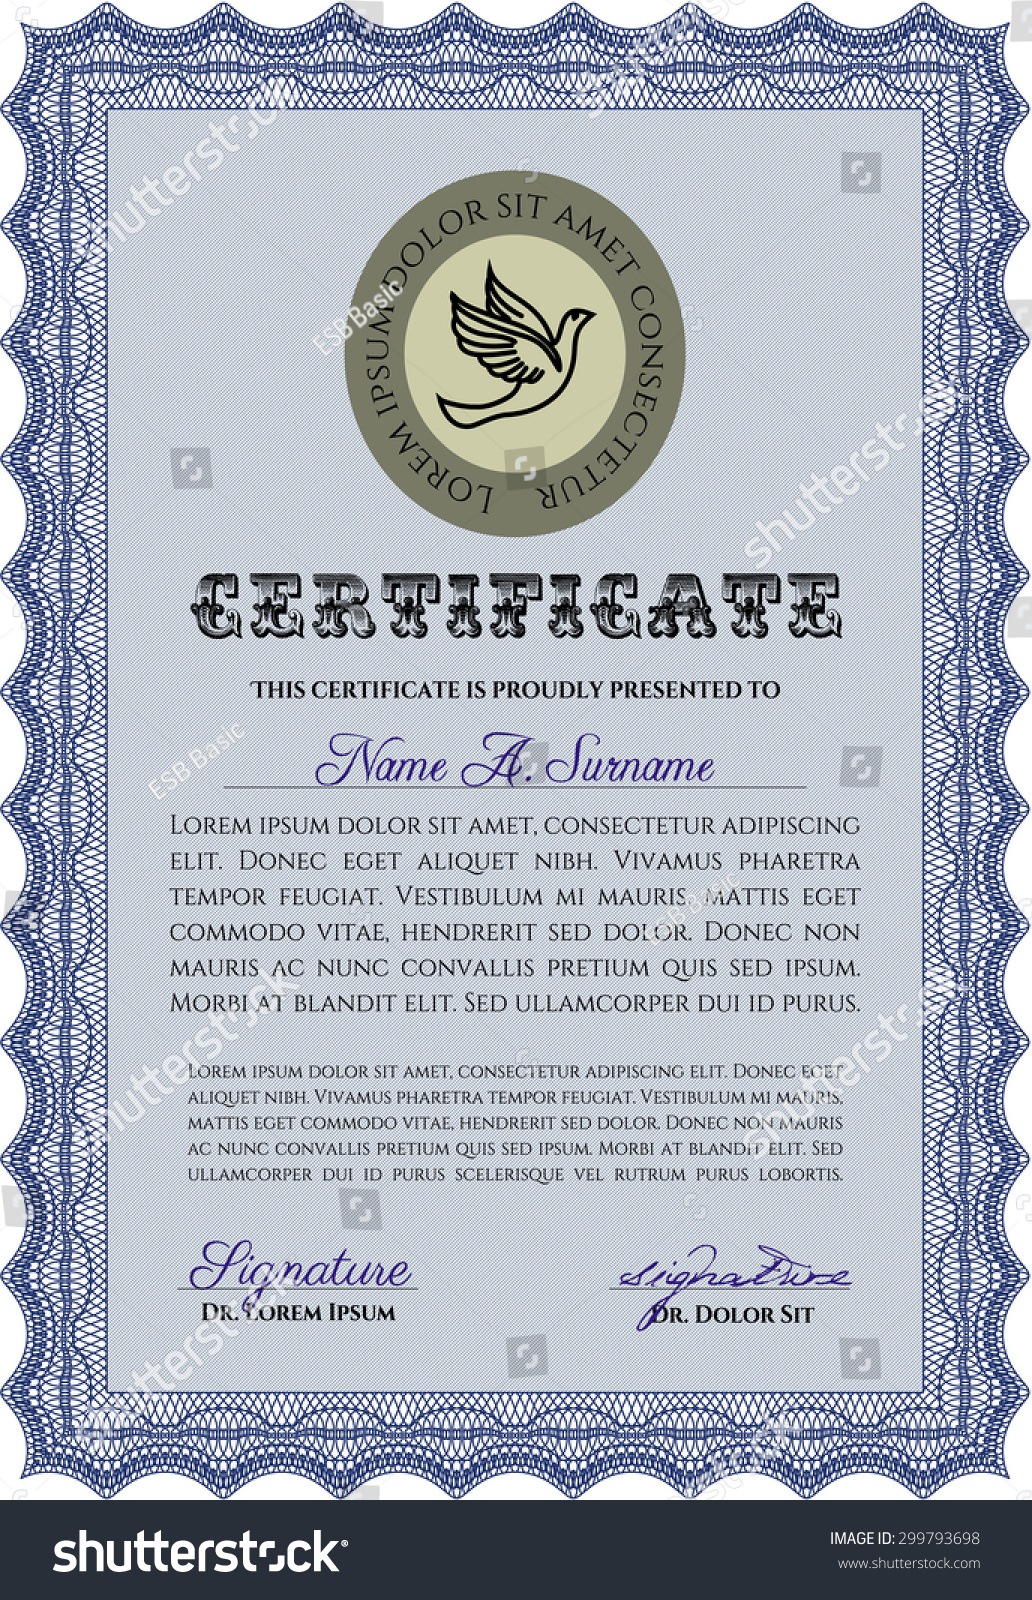 The best collection of diploma utility technician cover letter uitm diploma certificate sample image collections certificate stock vector sample certificate or diploma printer friendly money yelopaper Choice Image